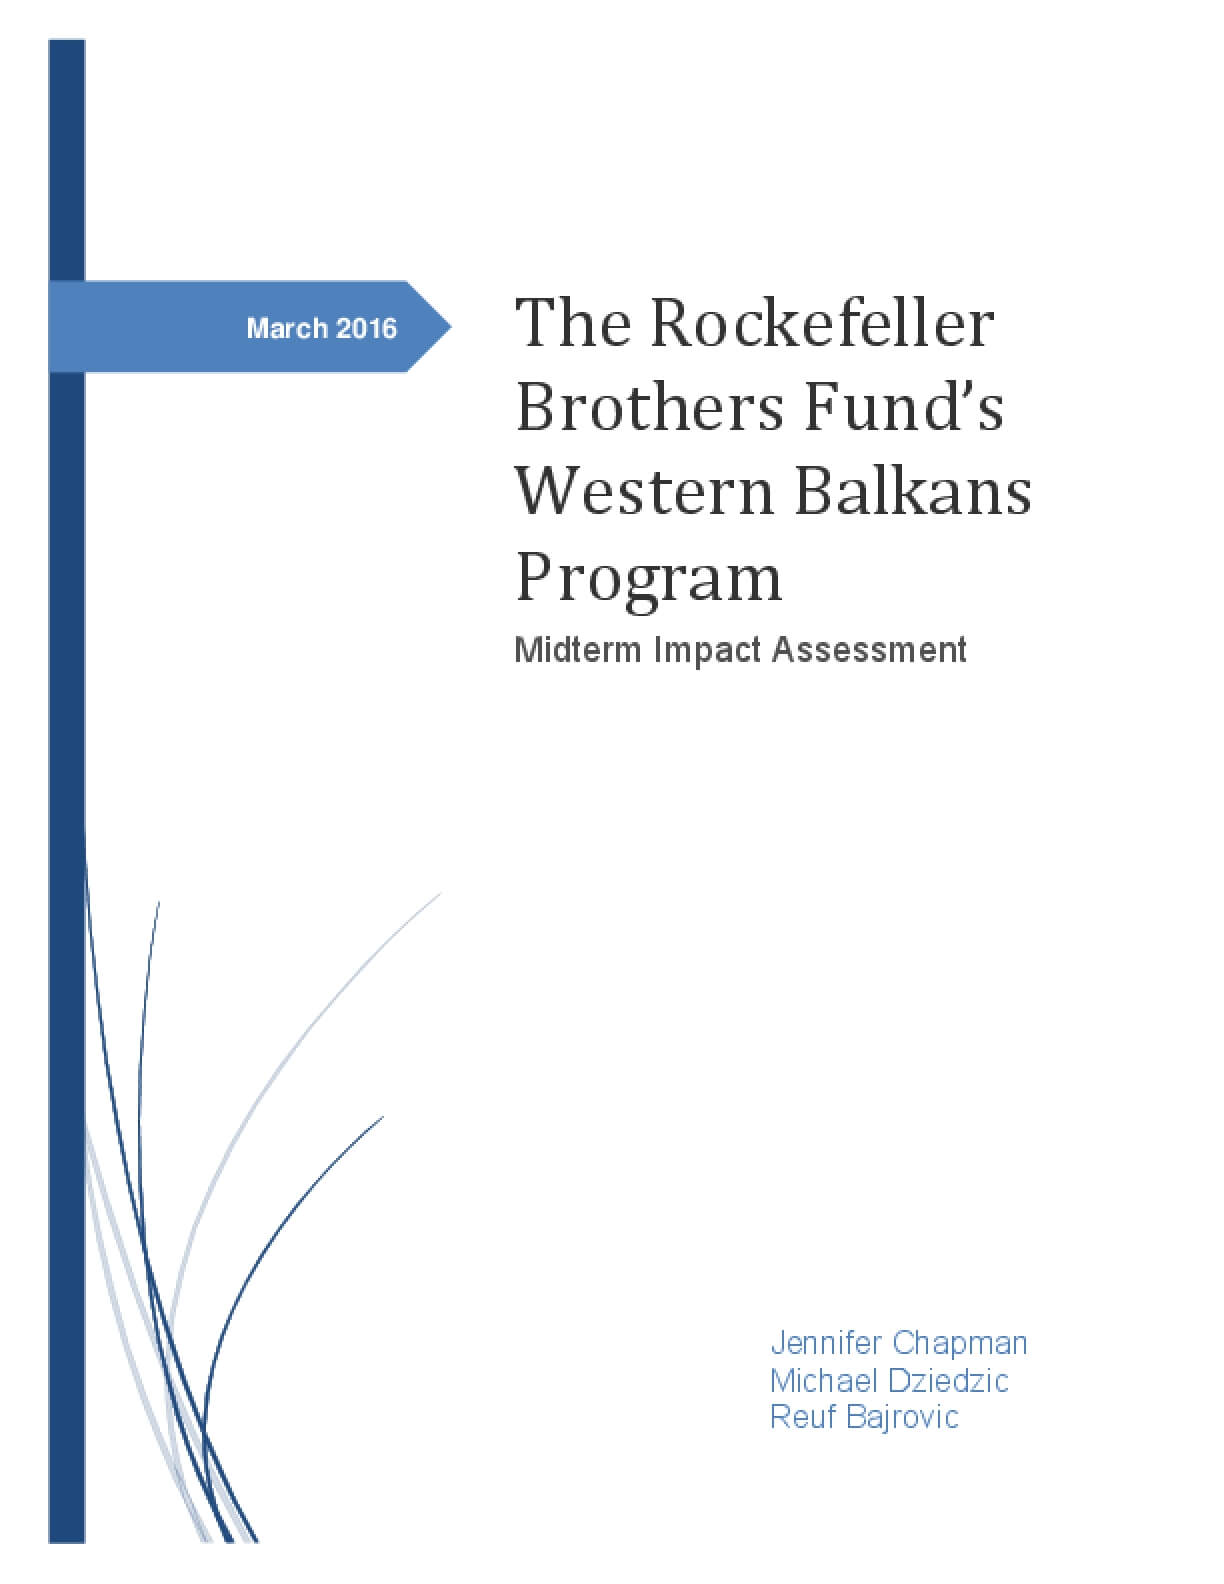 The Rockefeller Brothers Fund's Western Balkans Program: Midterm Impact Assessment